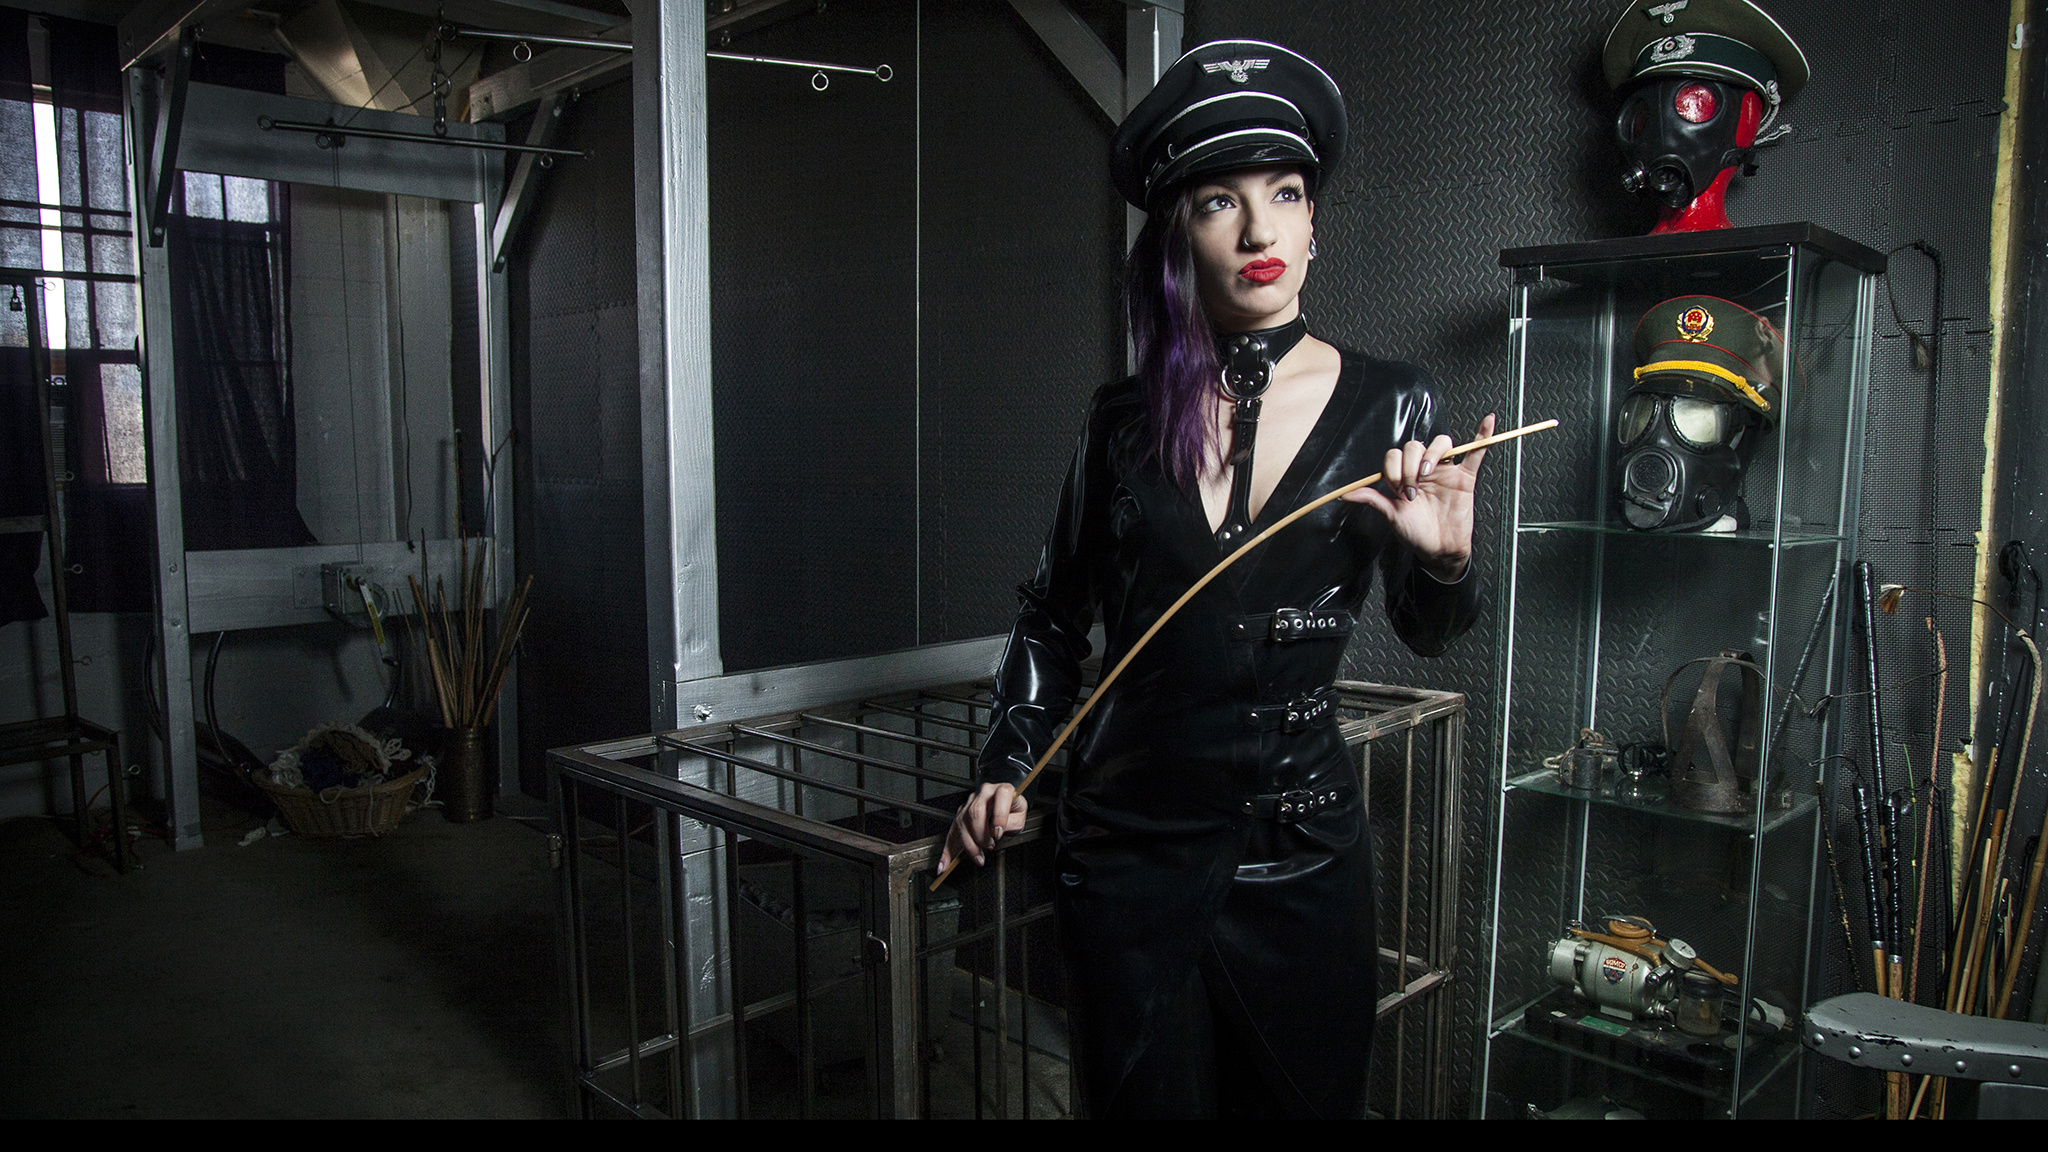 Dominatrix, Cybill Troy